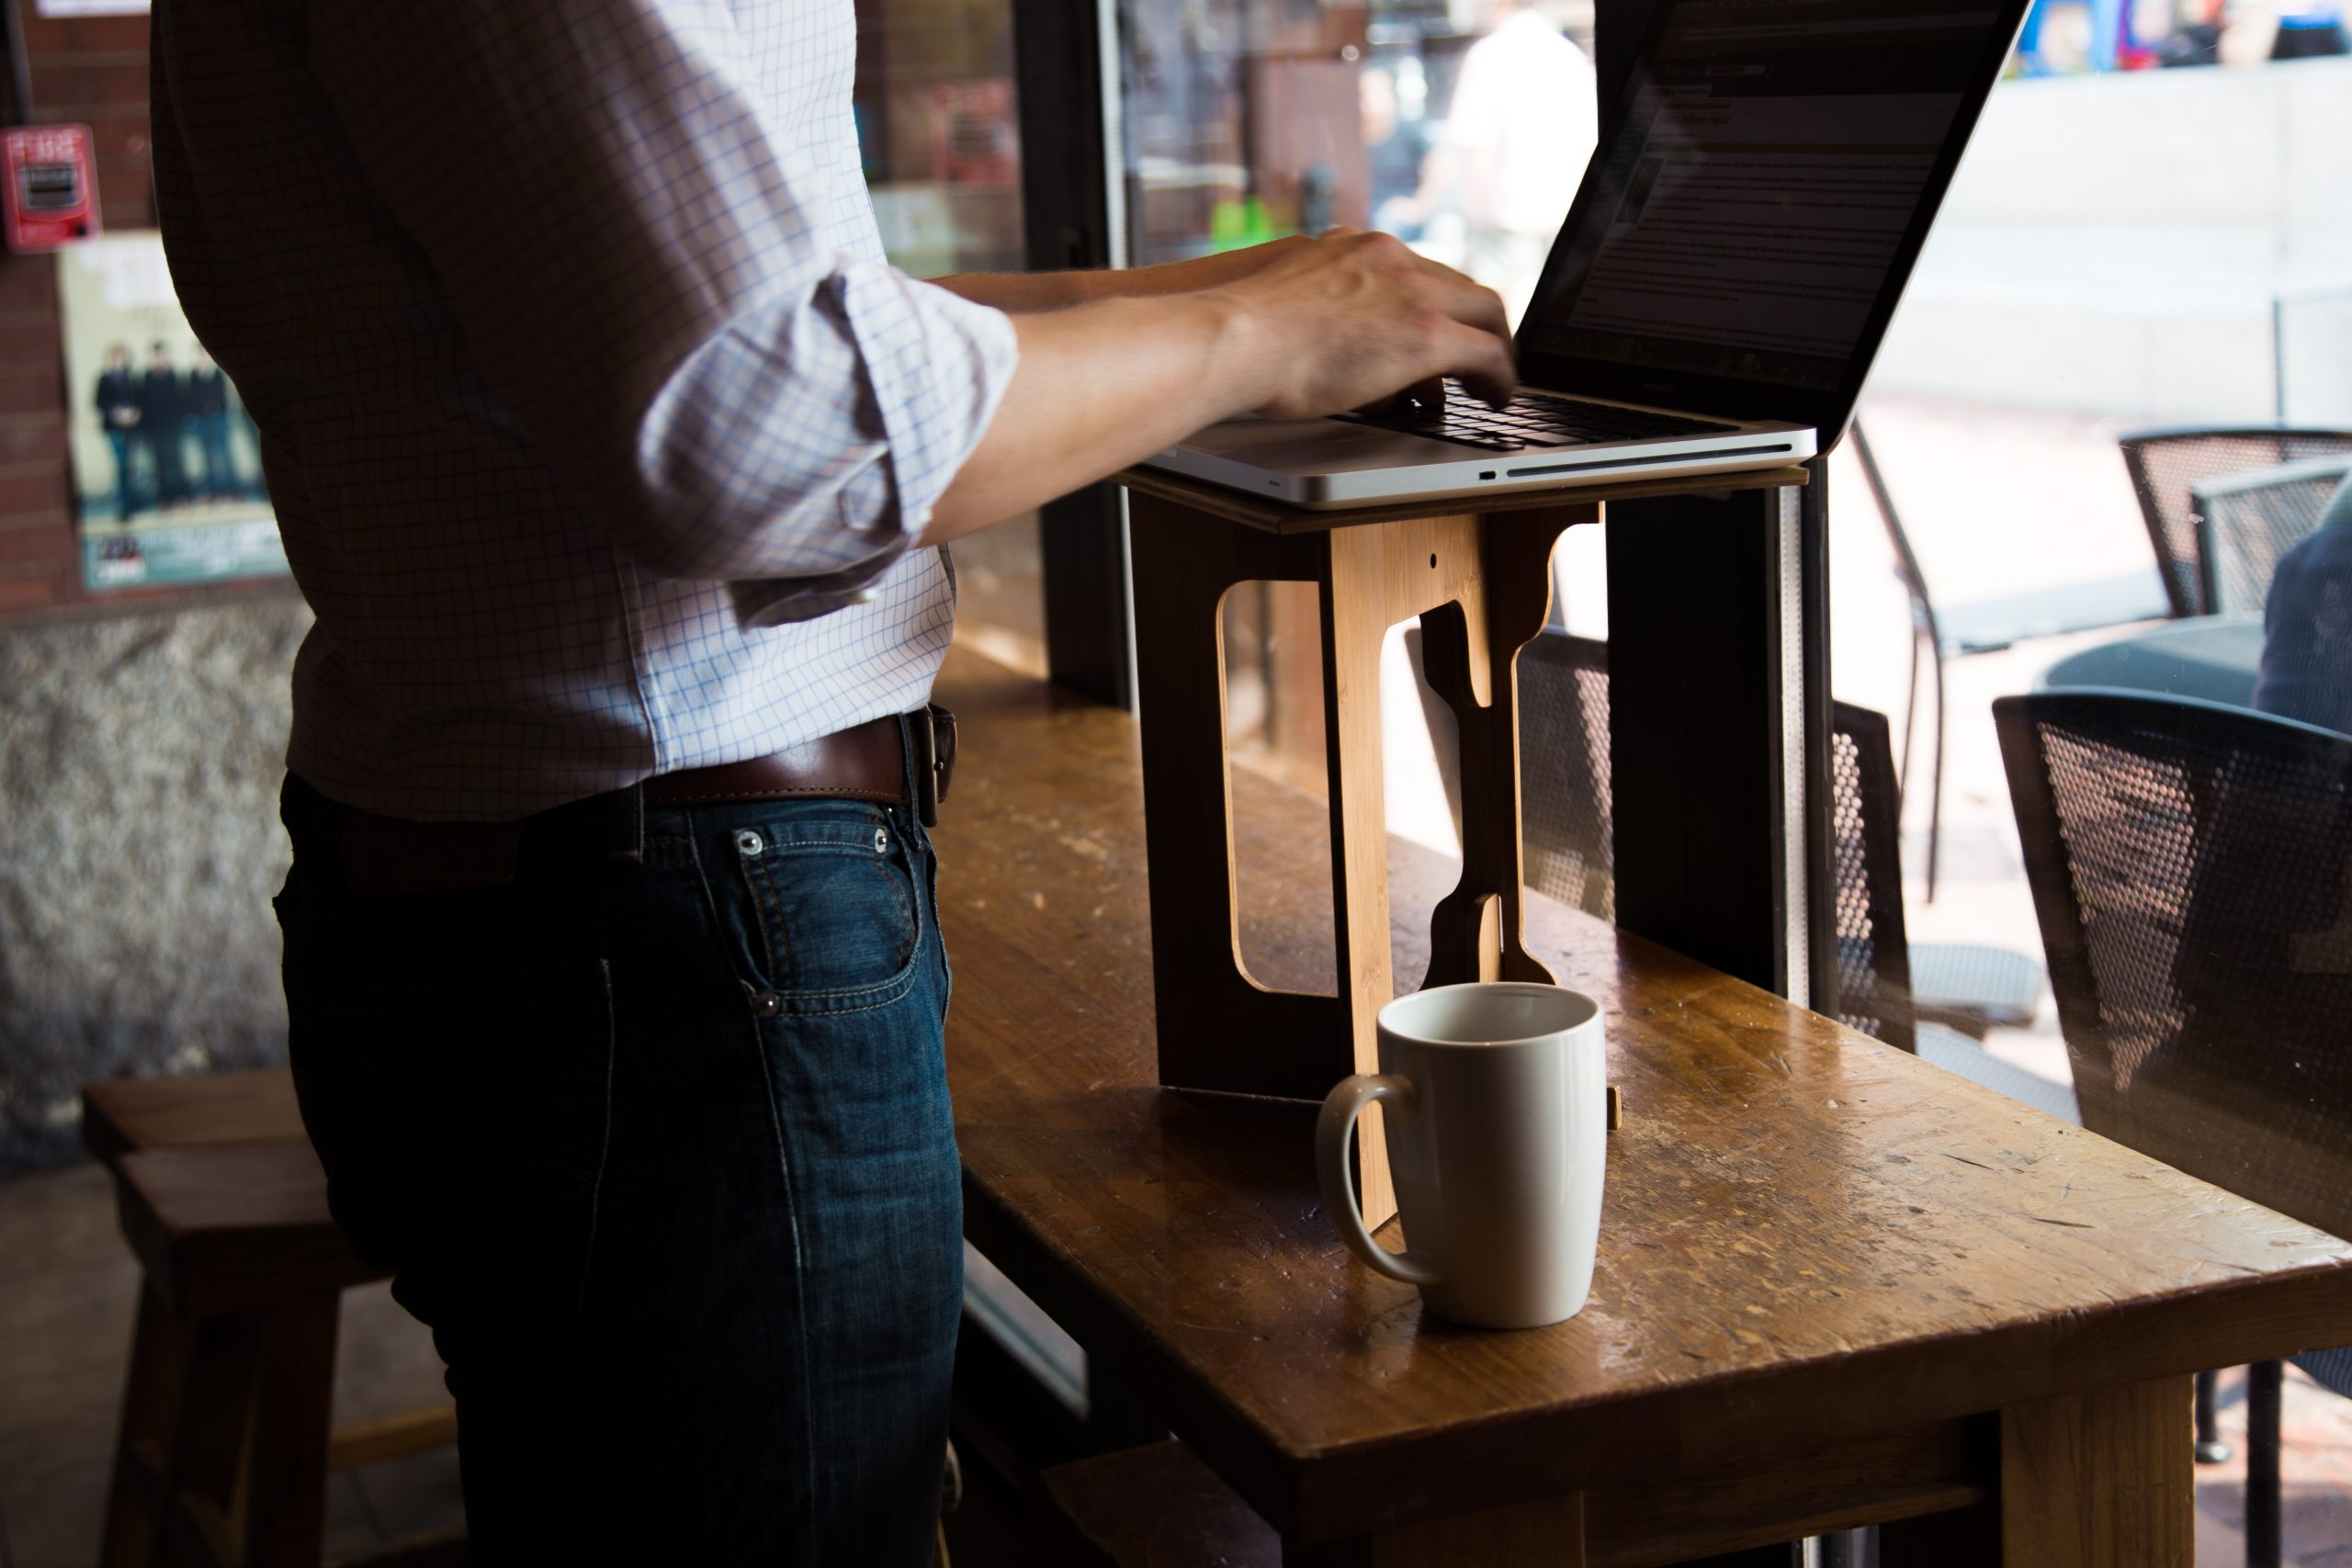 StandStand at cafe